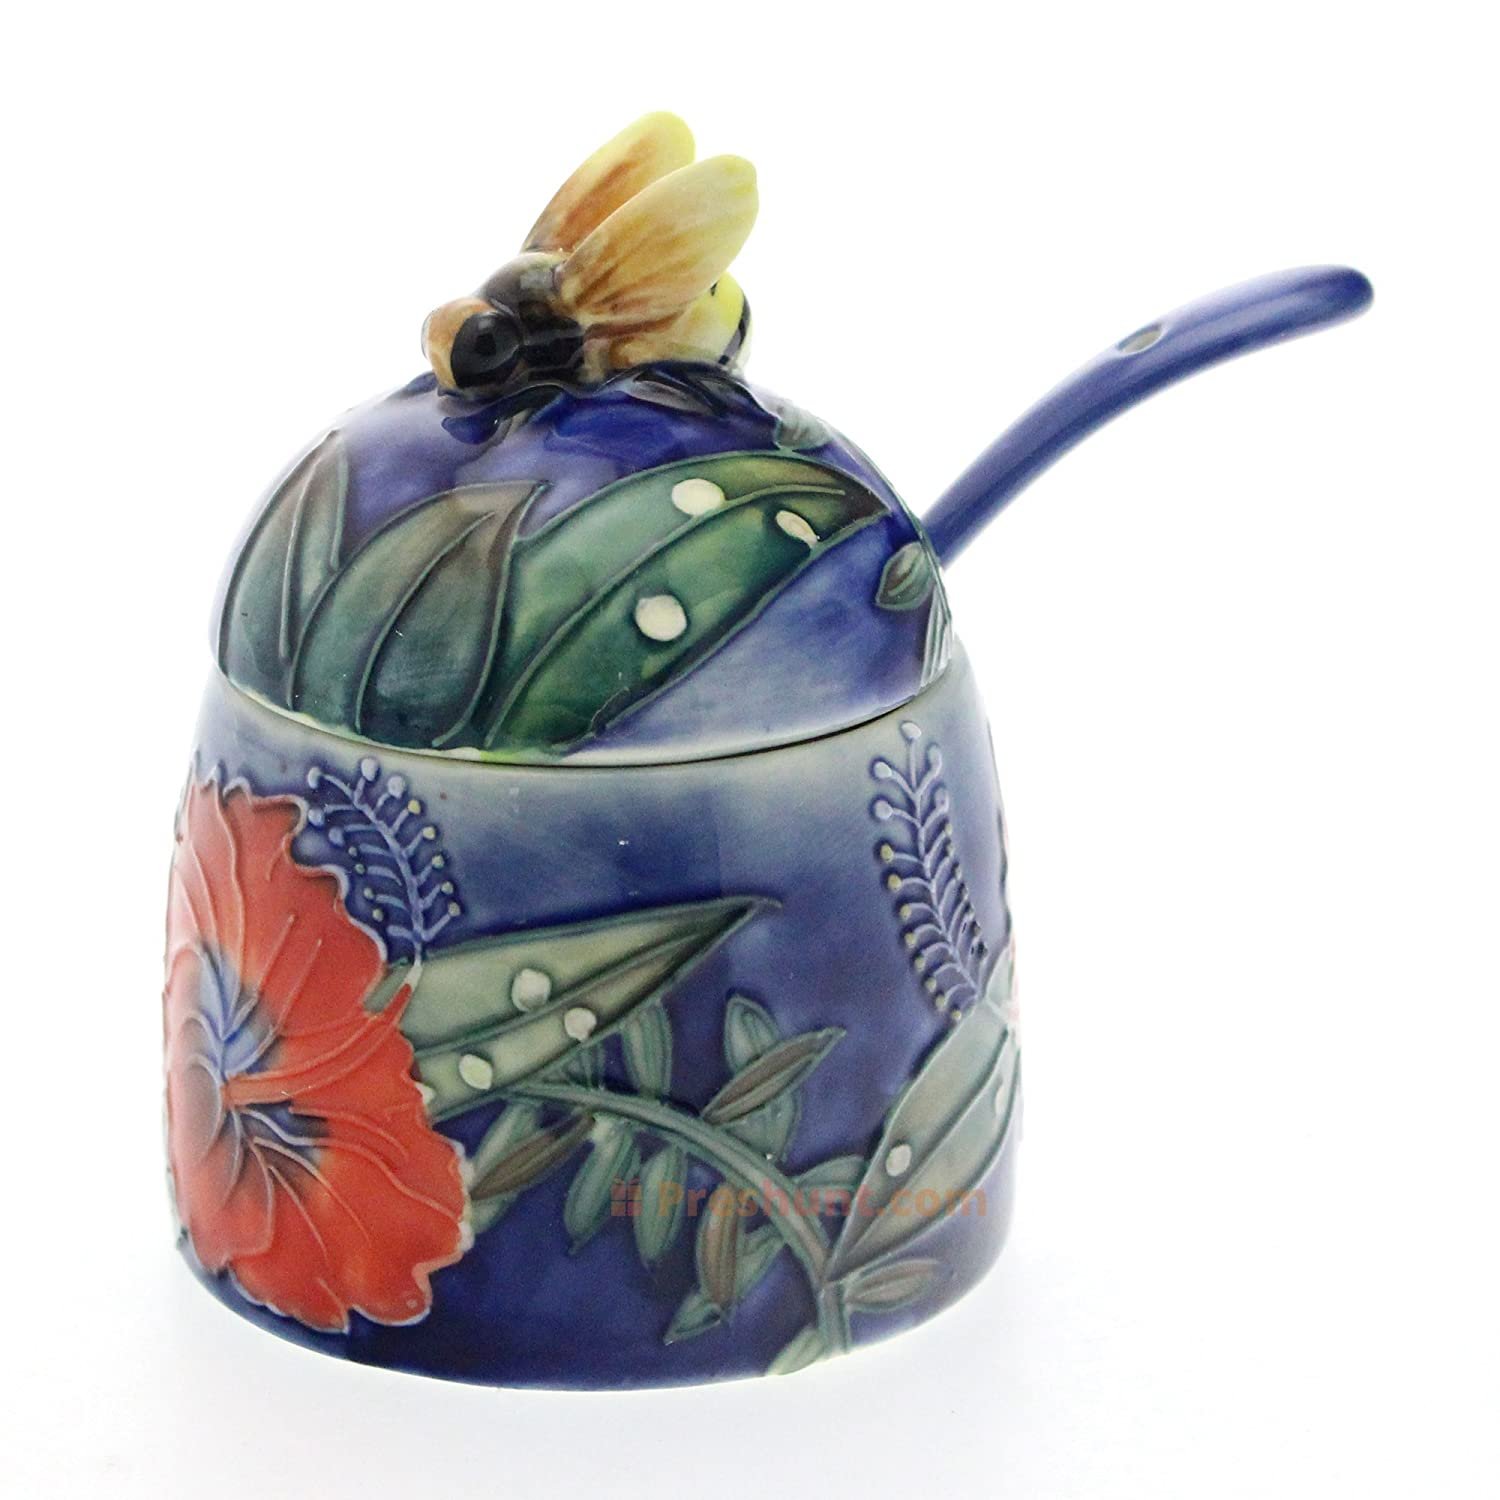 Old Tupton Ware - Hibiscus Design - Honey Pot and Spoon